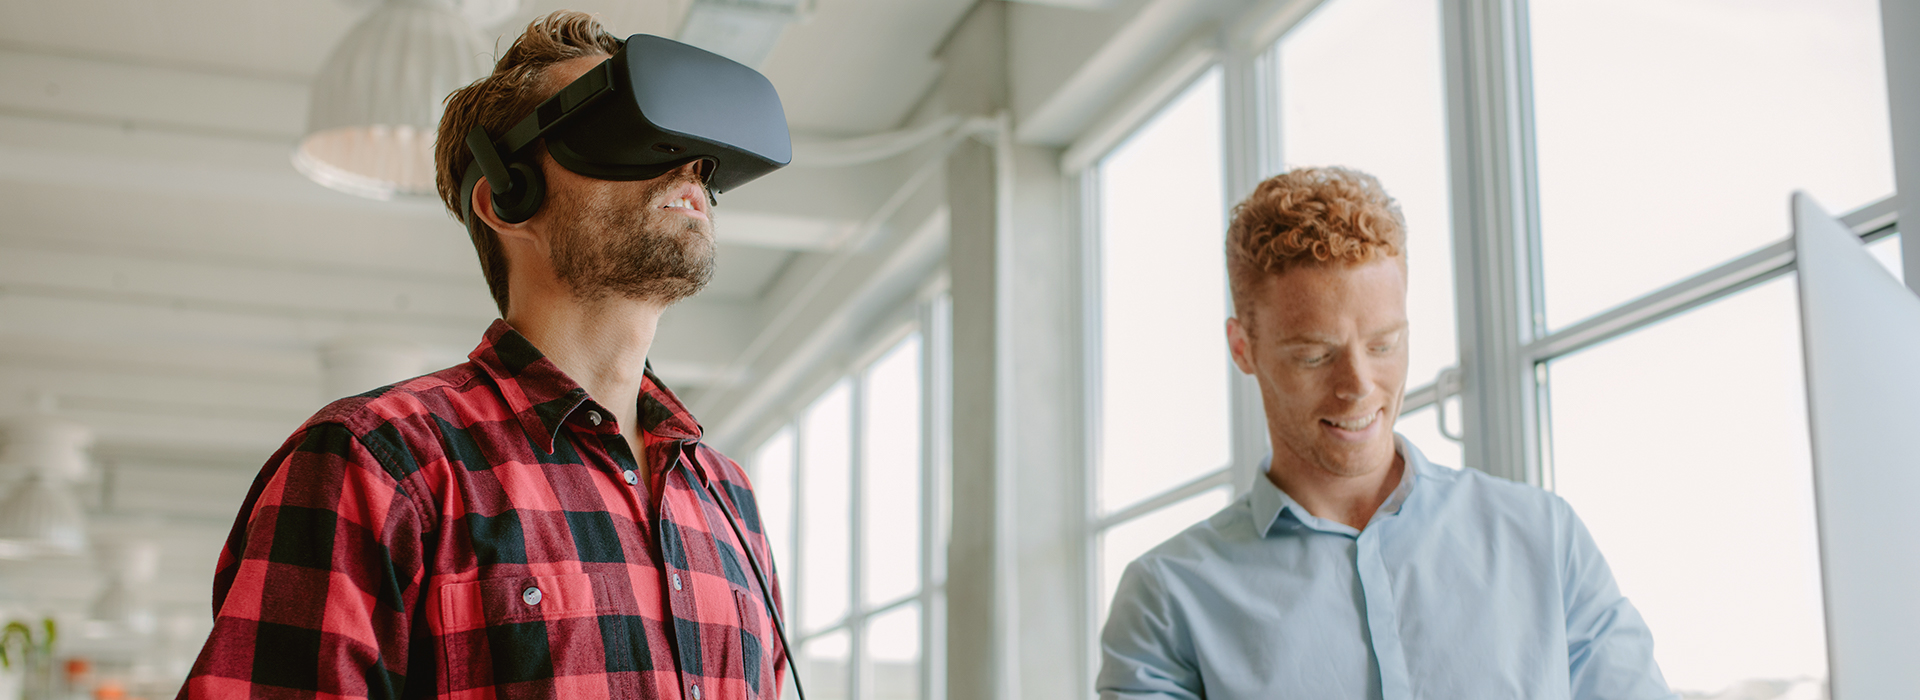 two guys trying virtual reality goggles